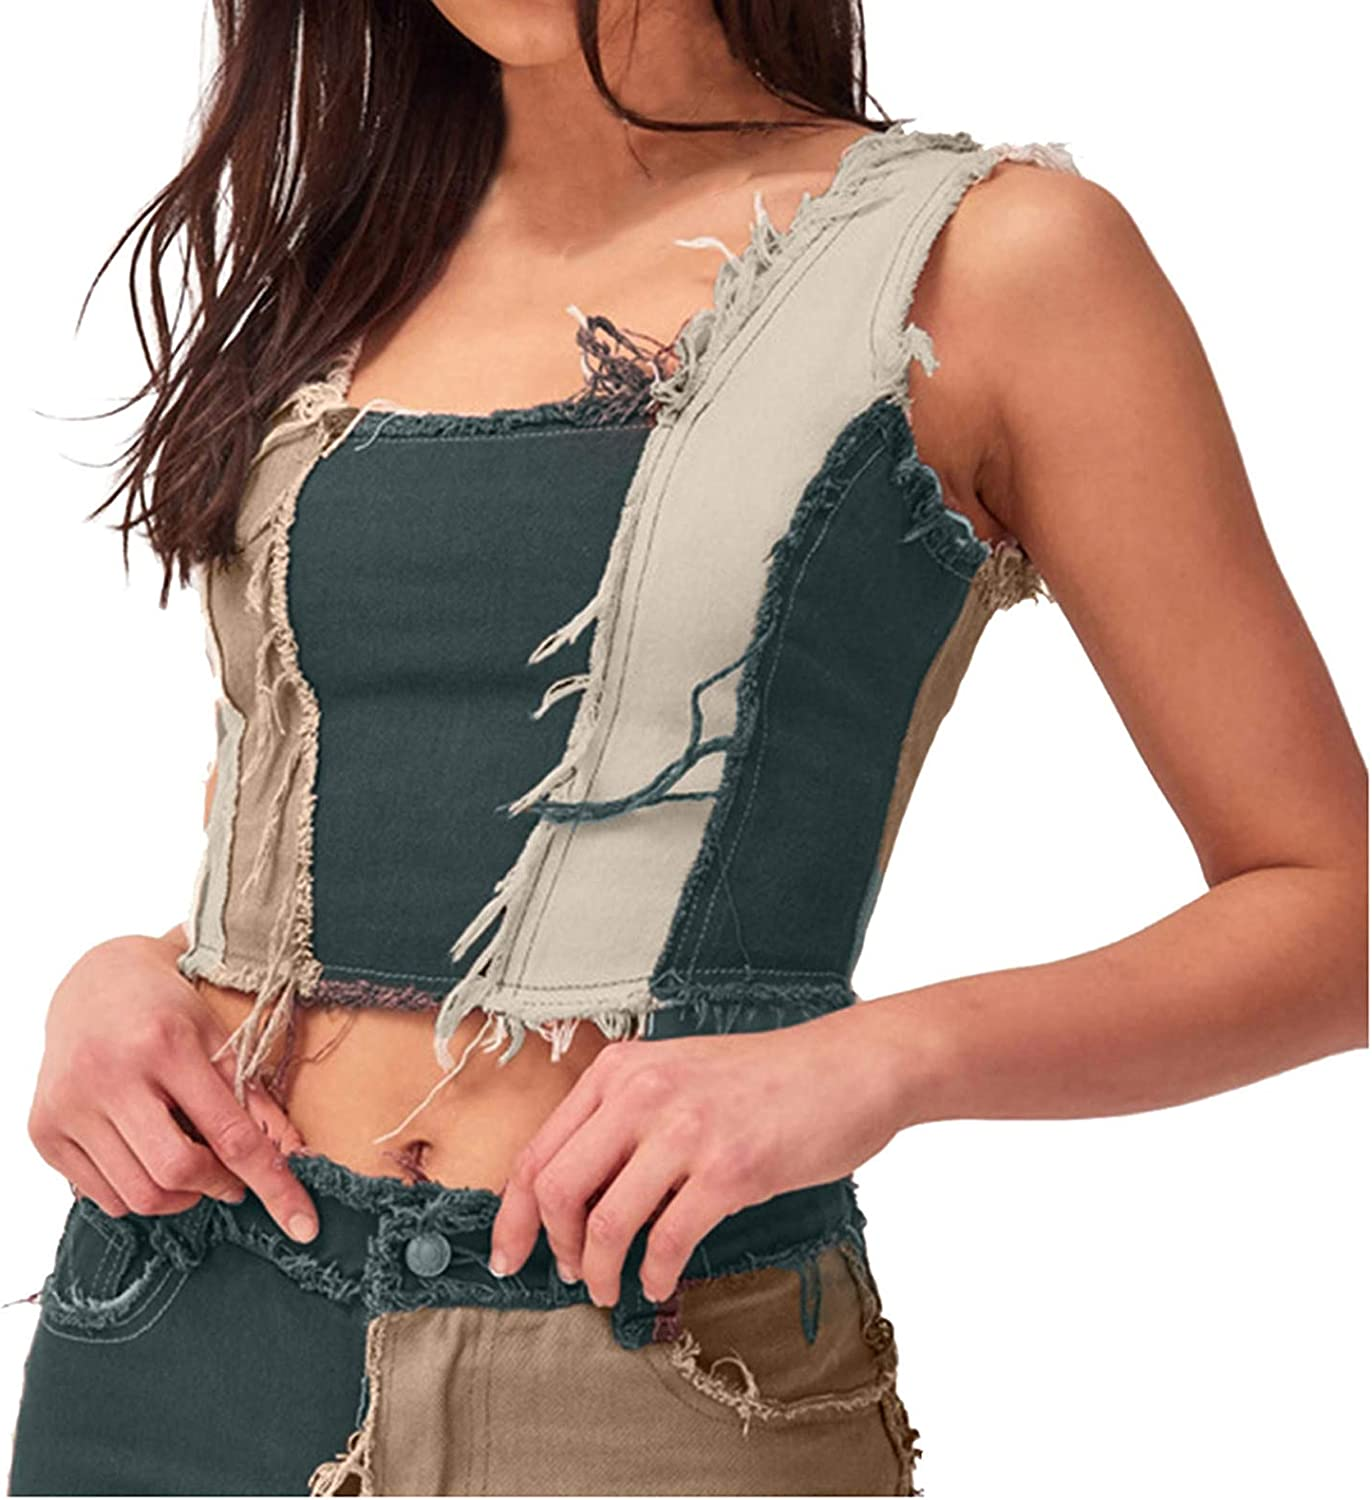 VEKDONE Womens Vintage Denim Crop Top Jeans Corset Top Patchwork Camisole Sleeveless Distressed Motocycle Streetwear